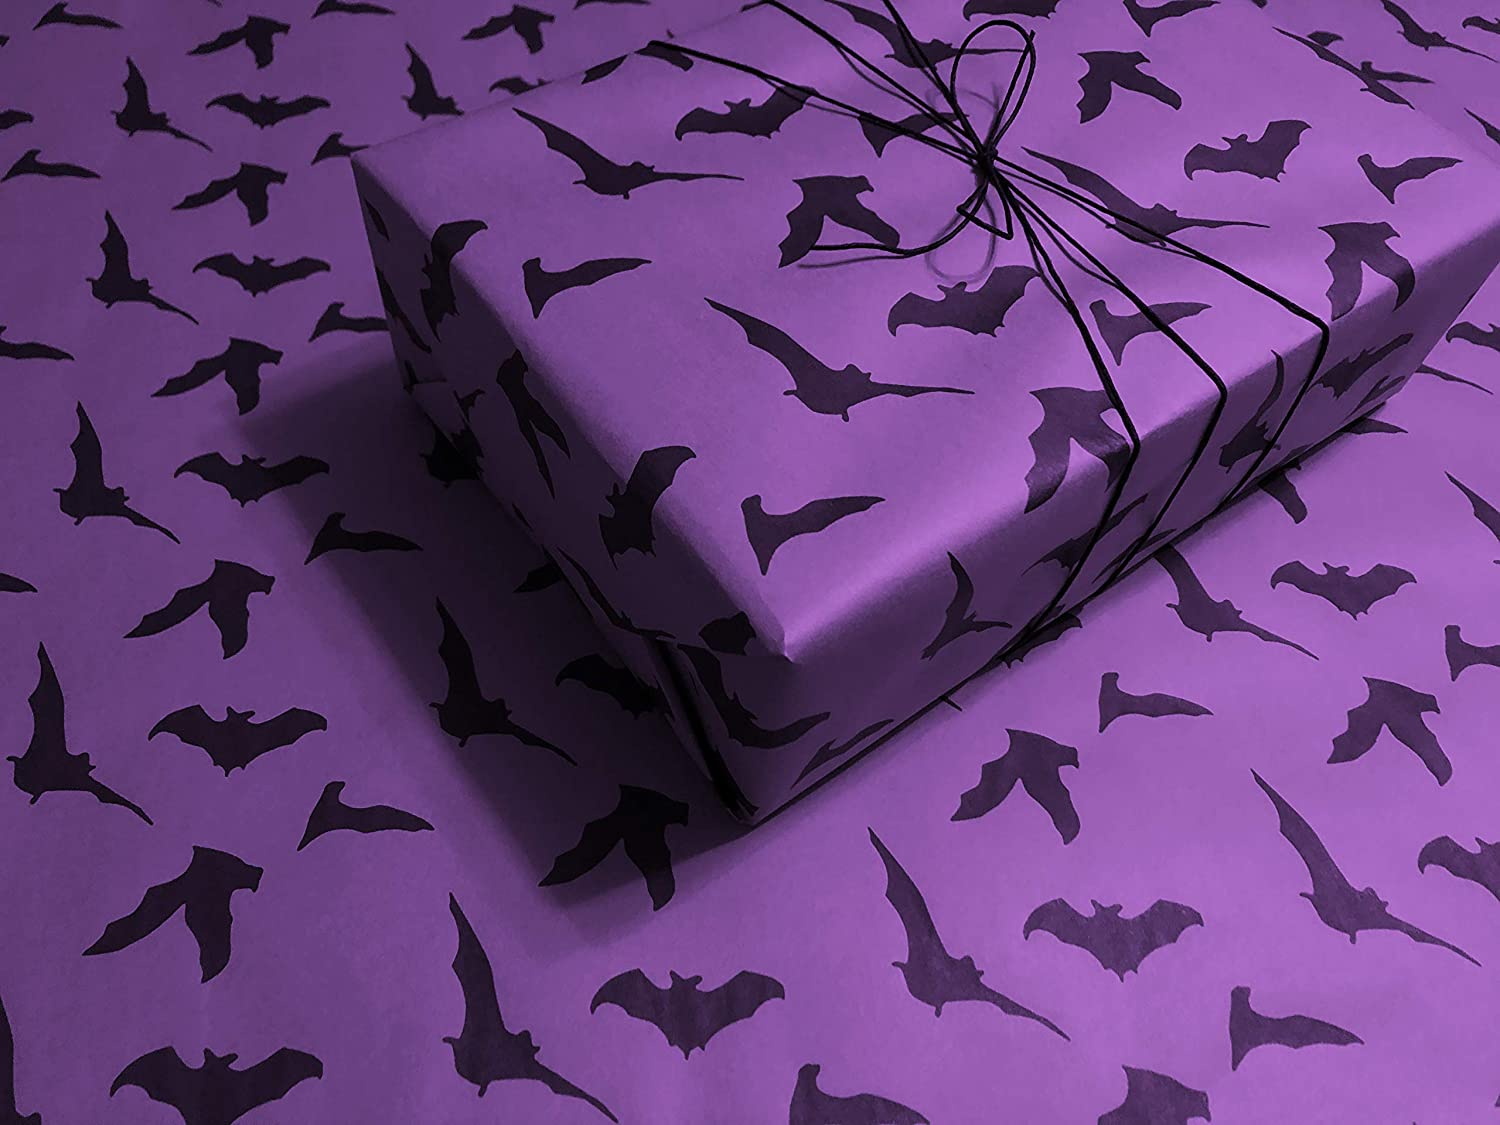 Black Bats on Purple Gothic Wrapping Paper up to 8 Feet of Birthday Gift Wrap